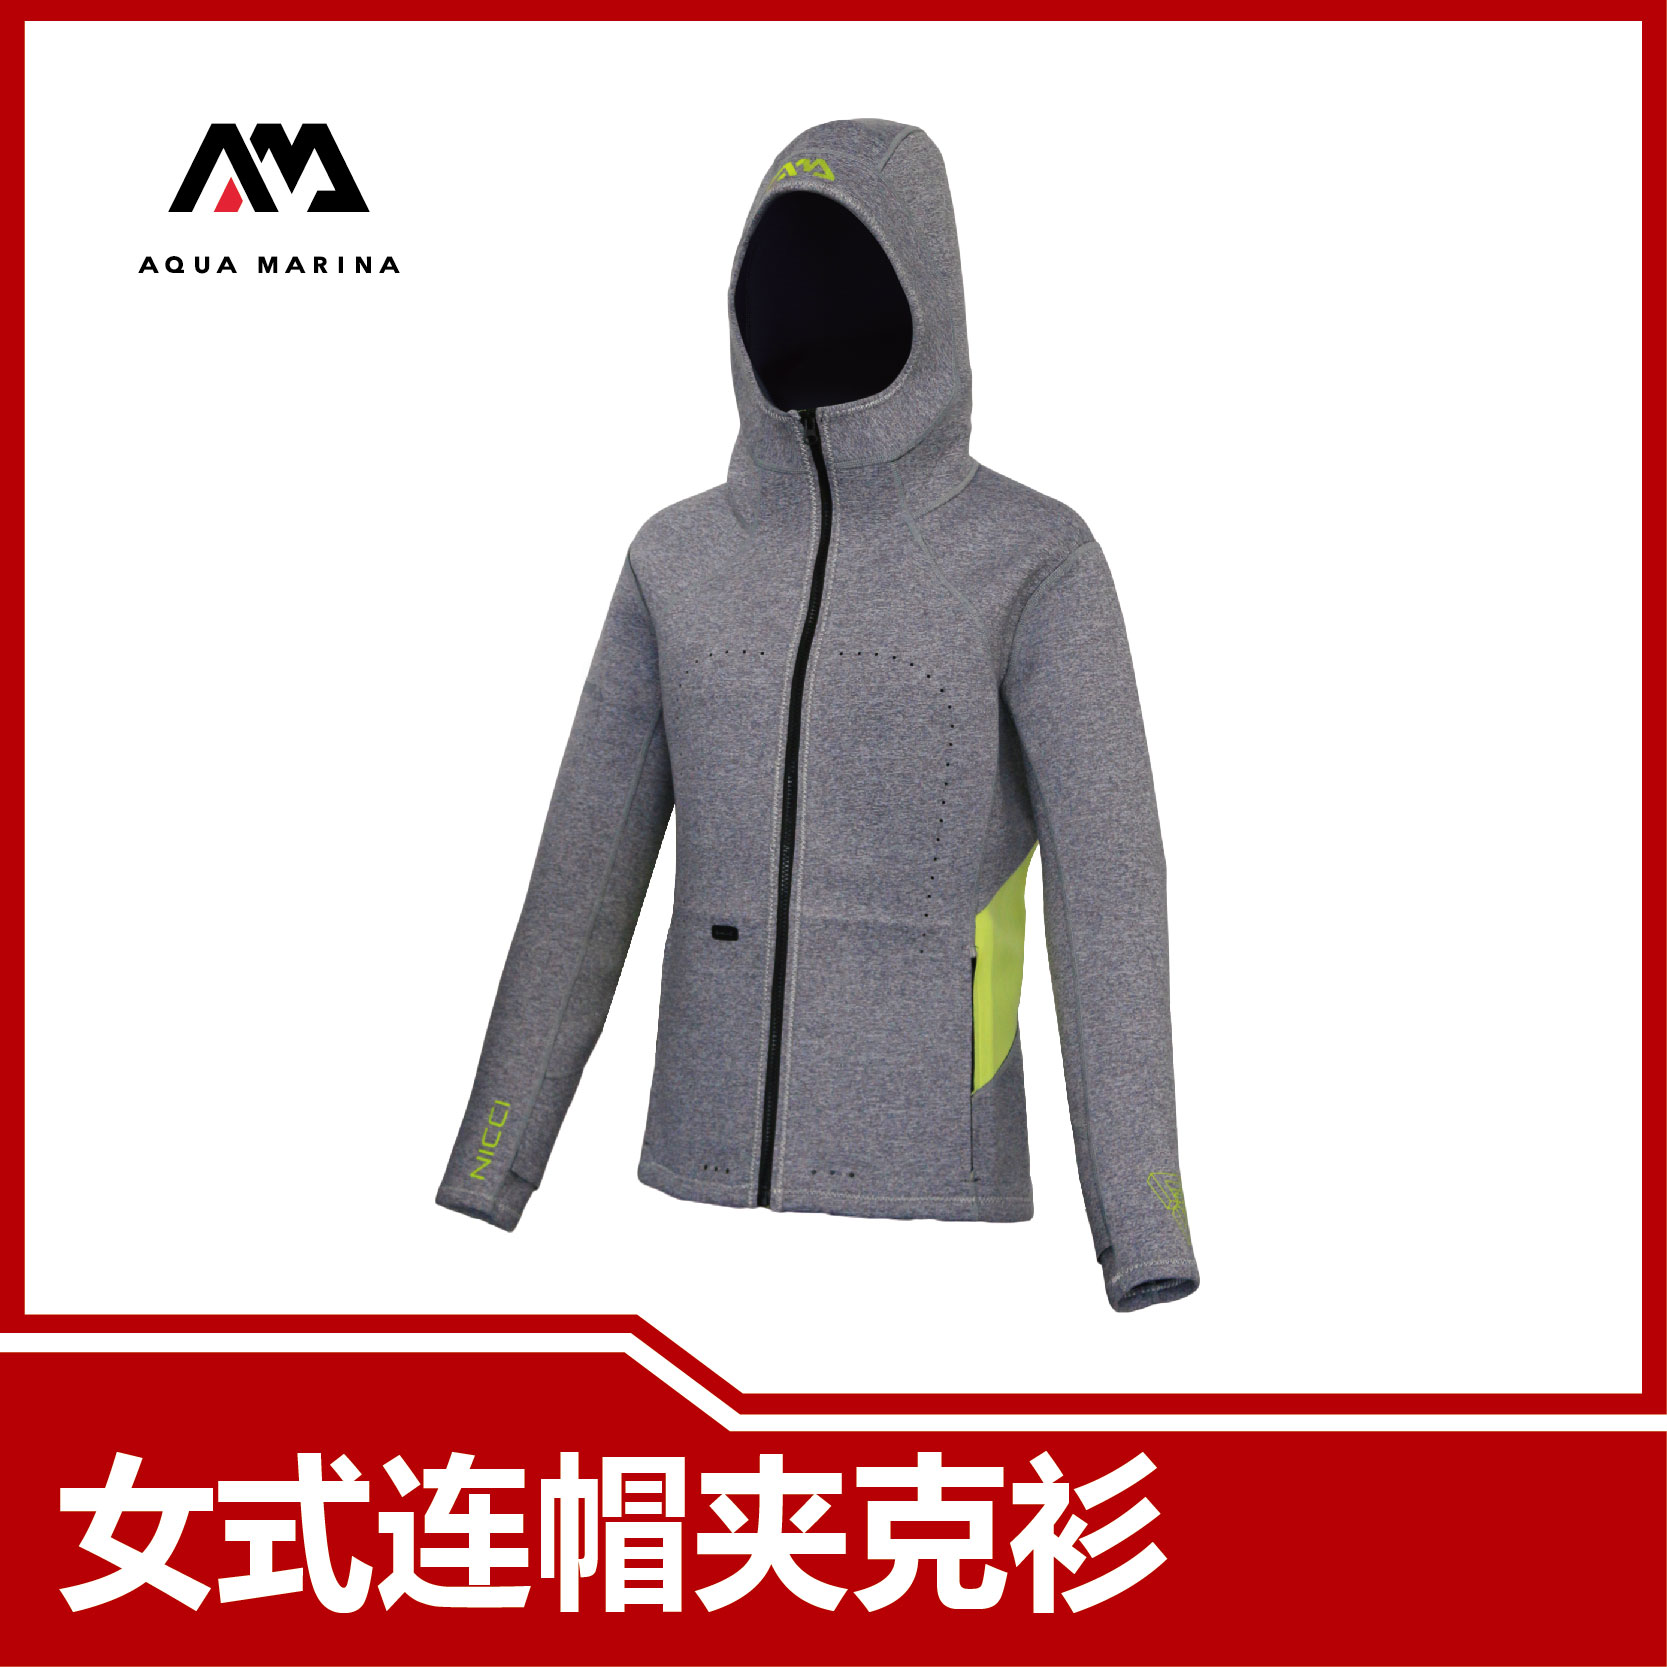 AquaMarina Le Rowing Women's Paddle Board Water Sports Wear Hooded Jacket Diving Warm and Cold Suit.